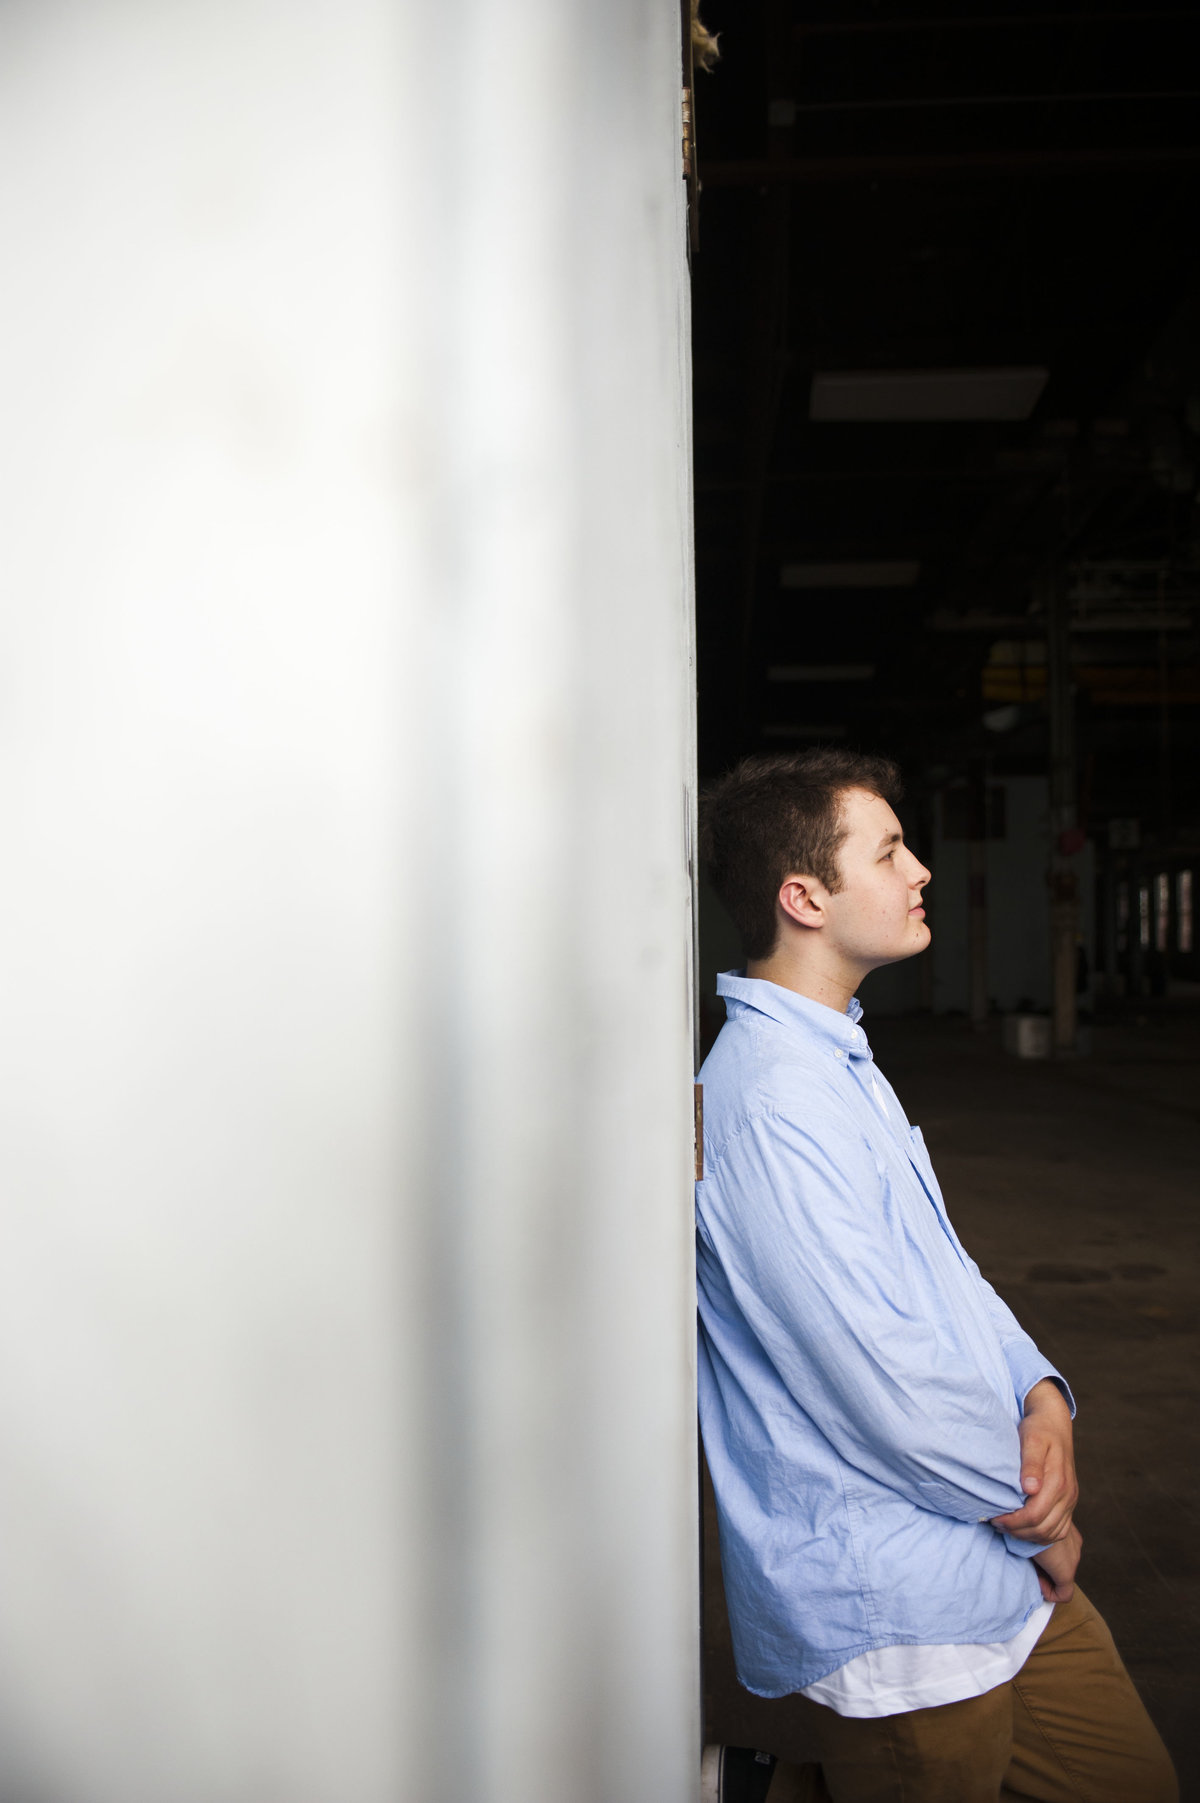 High school boy leans against a wall on profile for senior portrait in downtown Portland, Maine